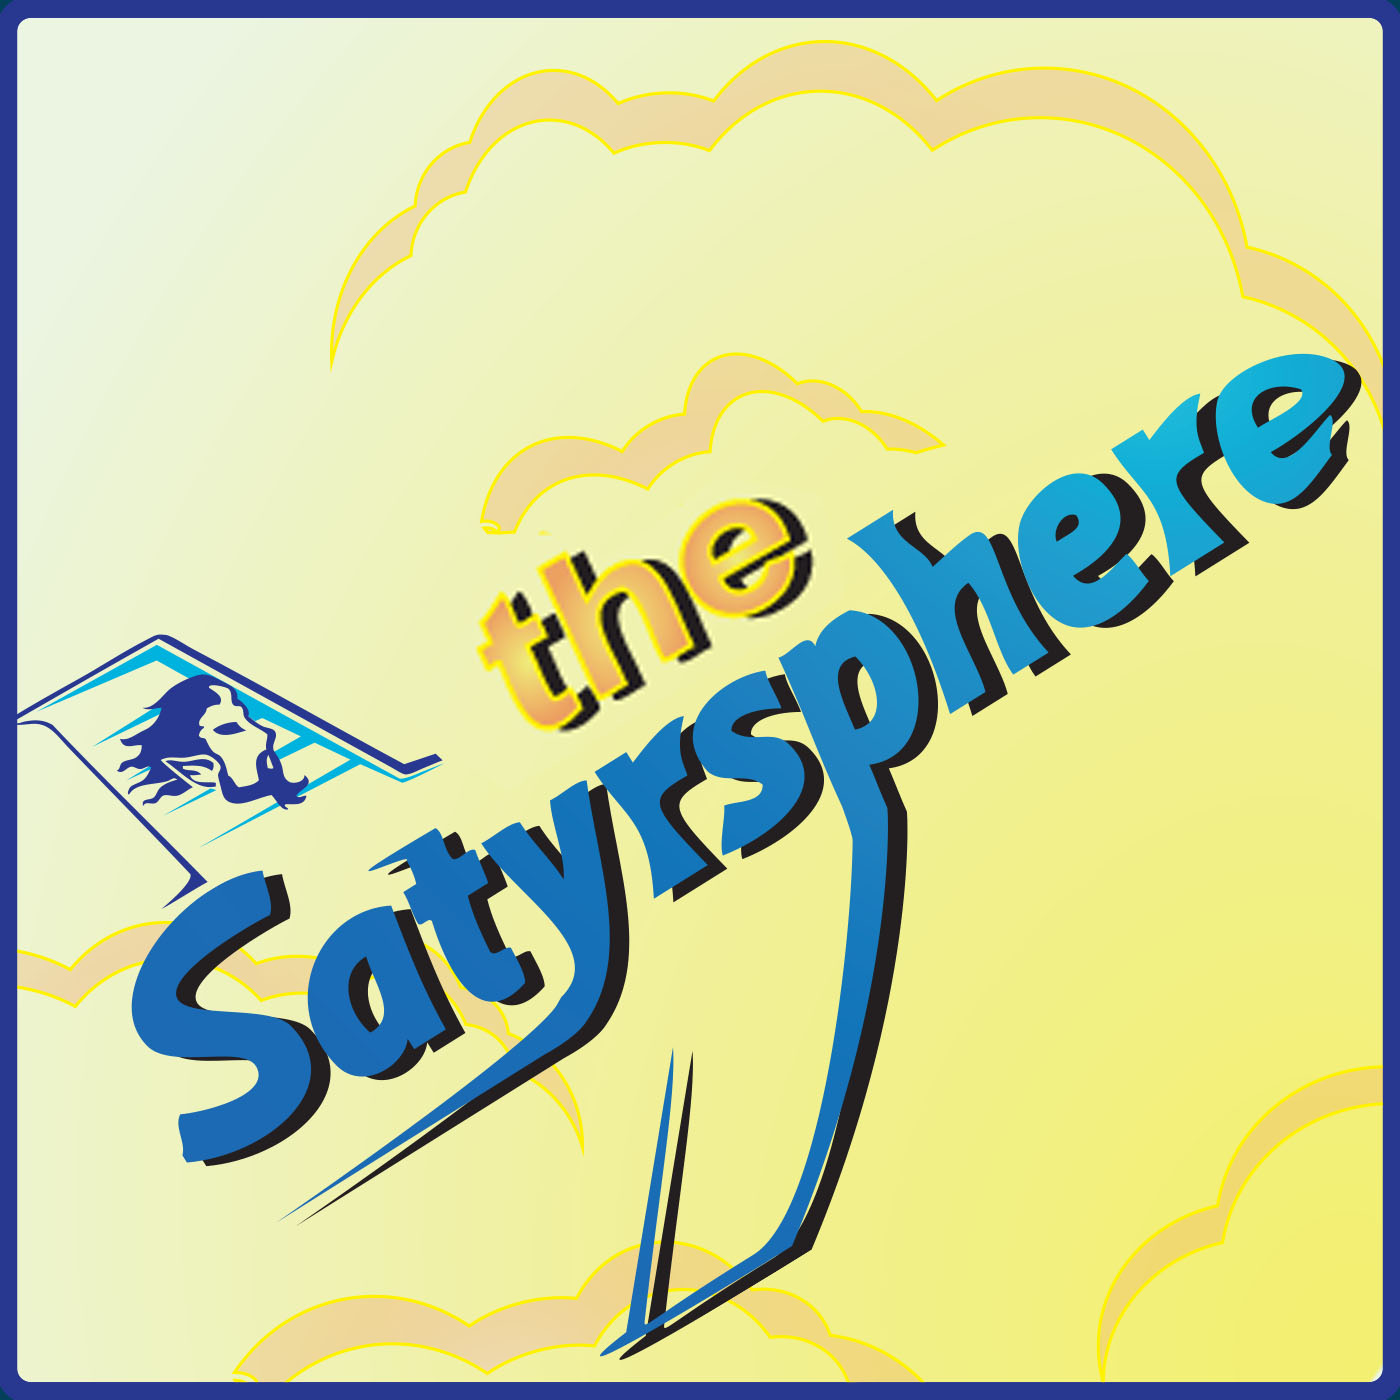 The Satyrsphere #139